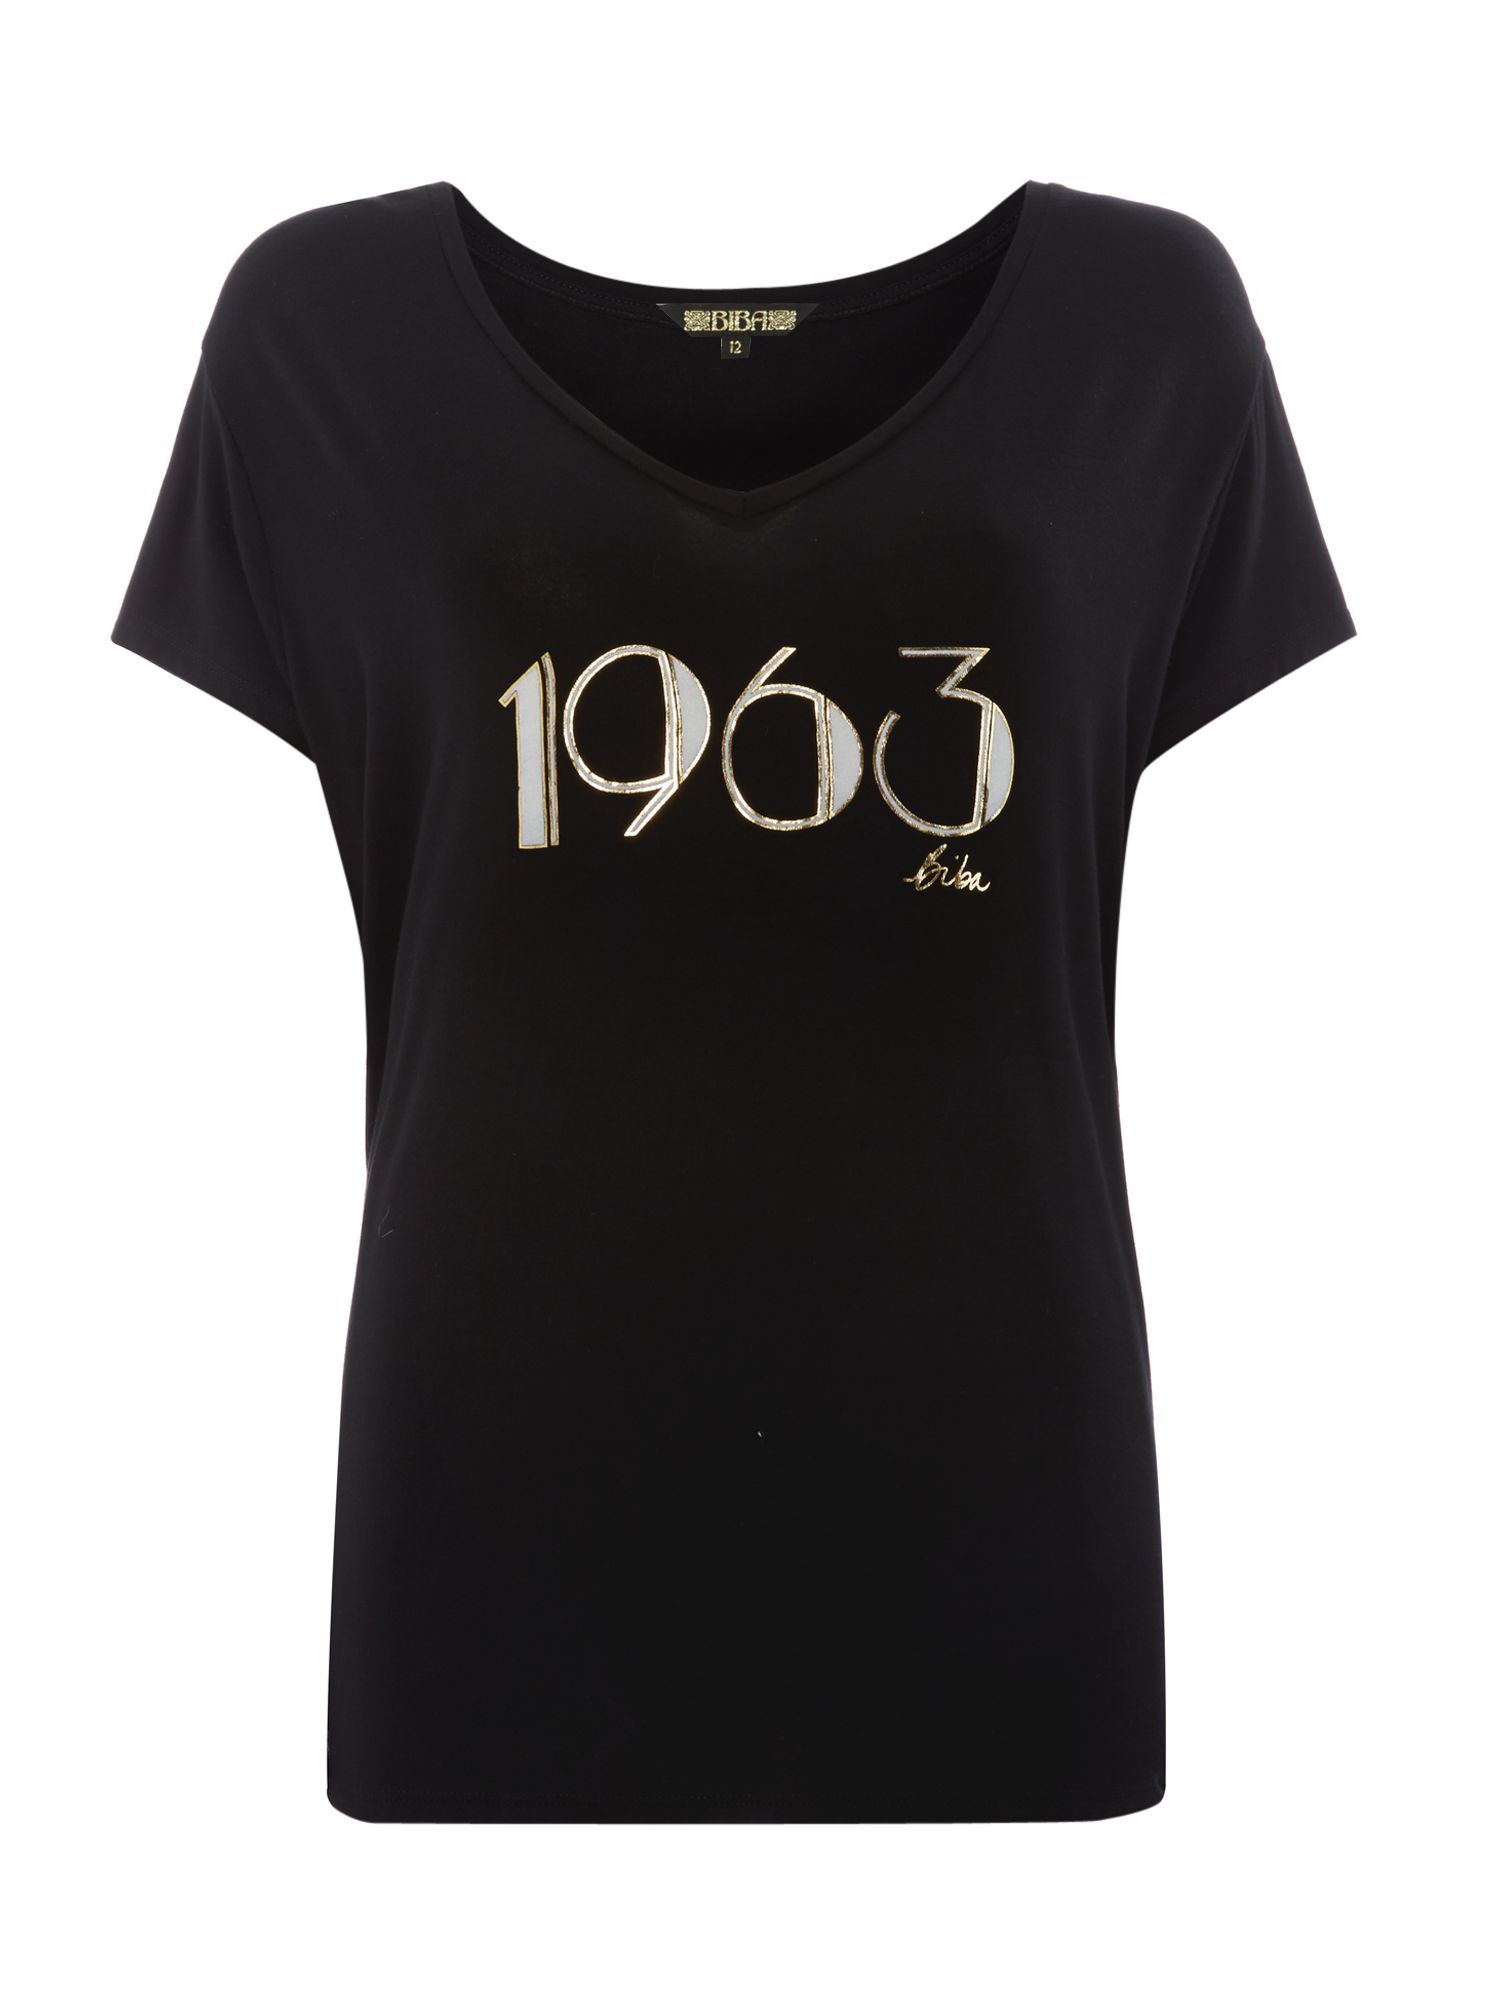 Biba 1963 slogan relaxed v neck tee, Black